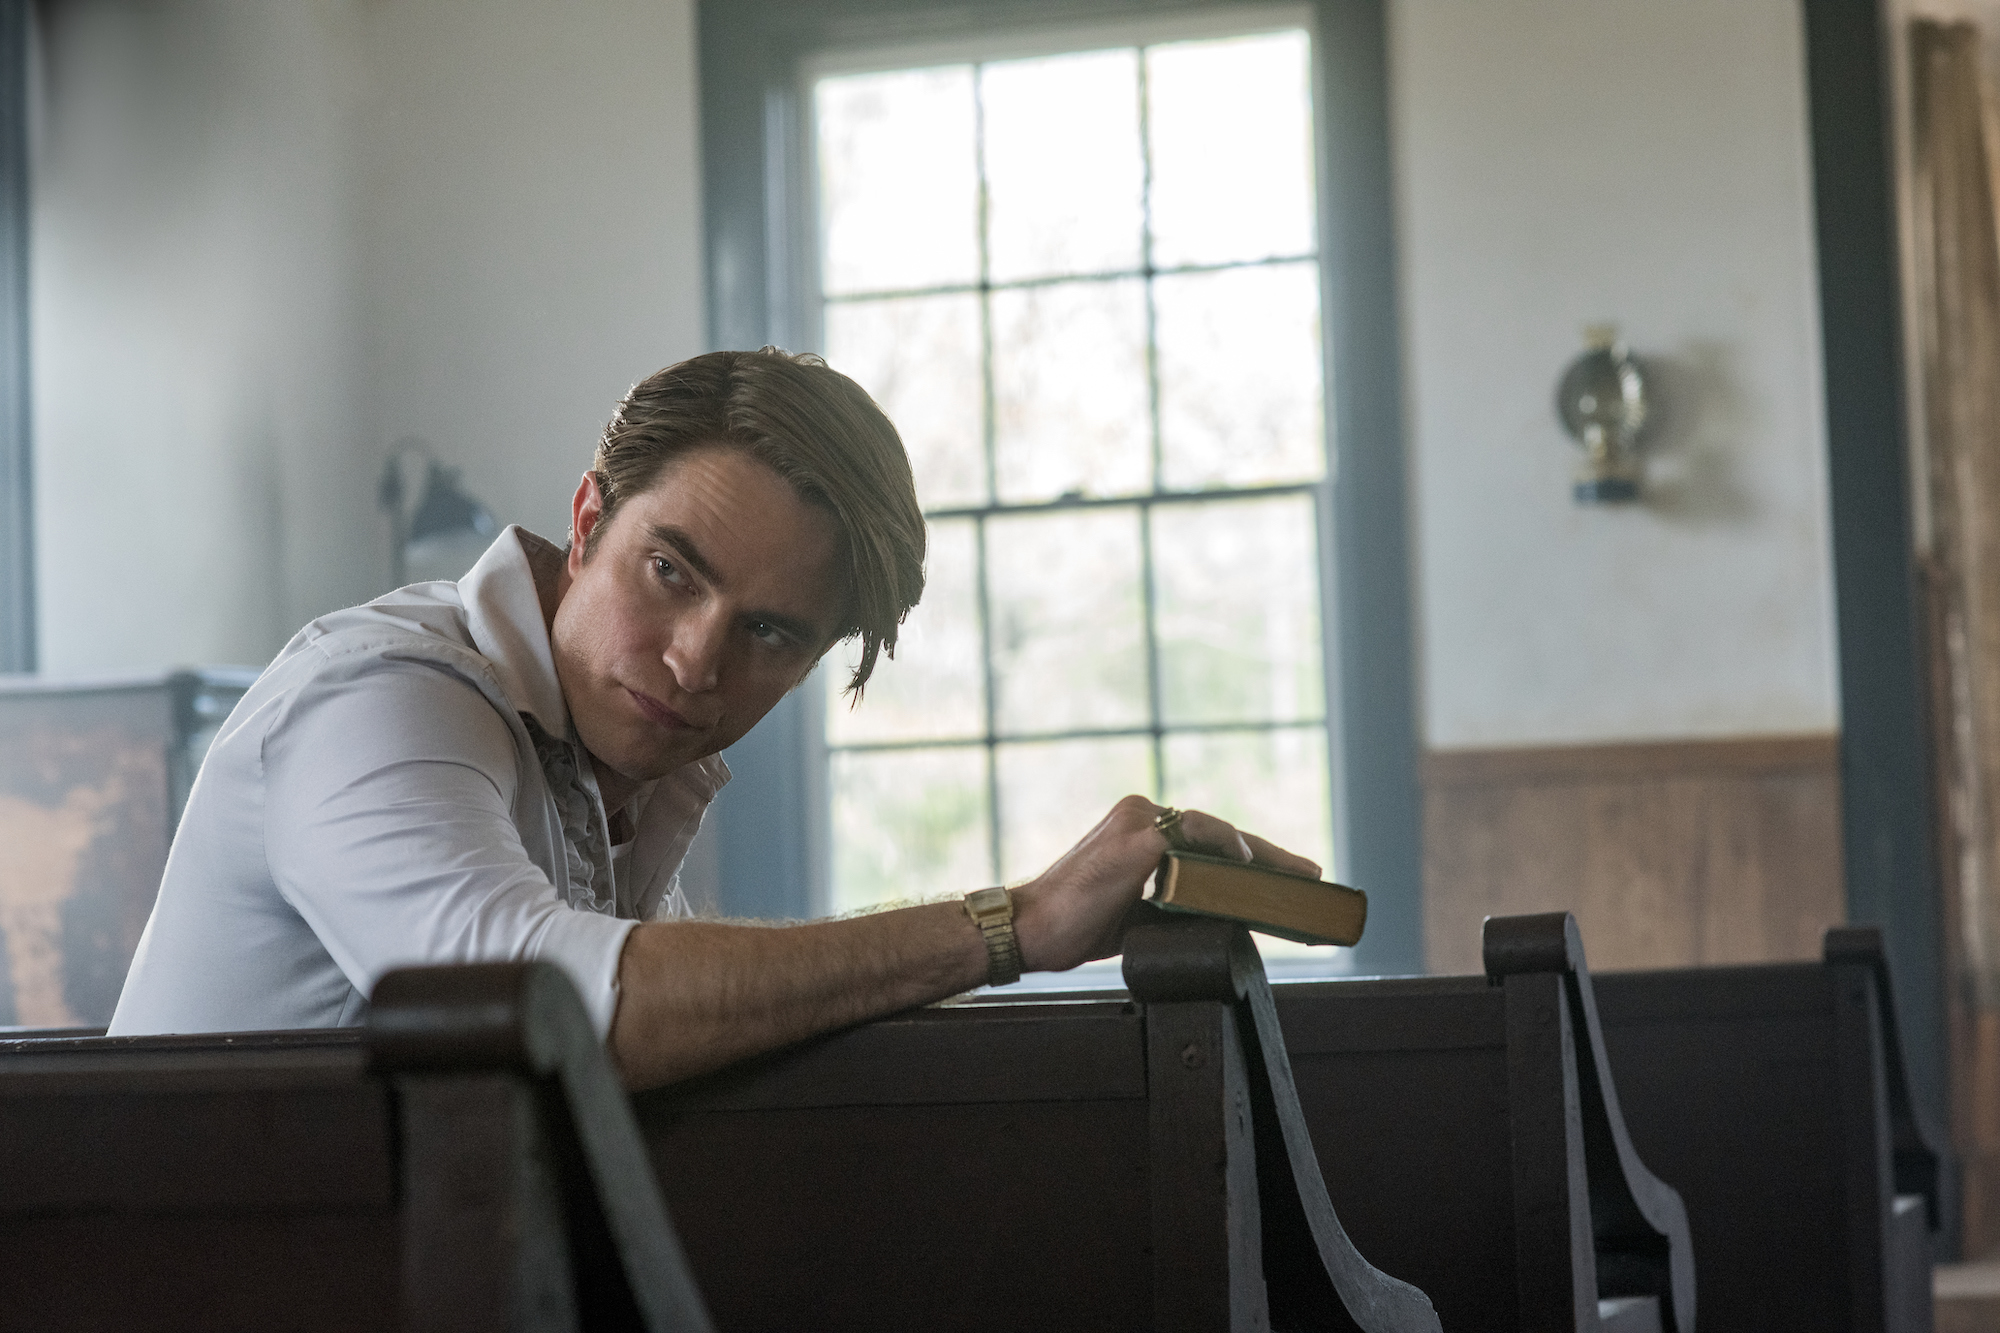 Robert Pattinson in 'The Devil All The Time' as Preston Teagardin.